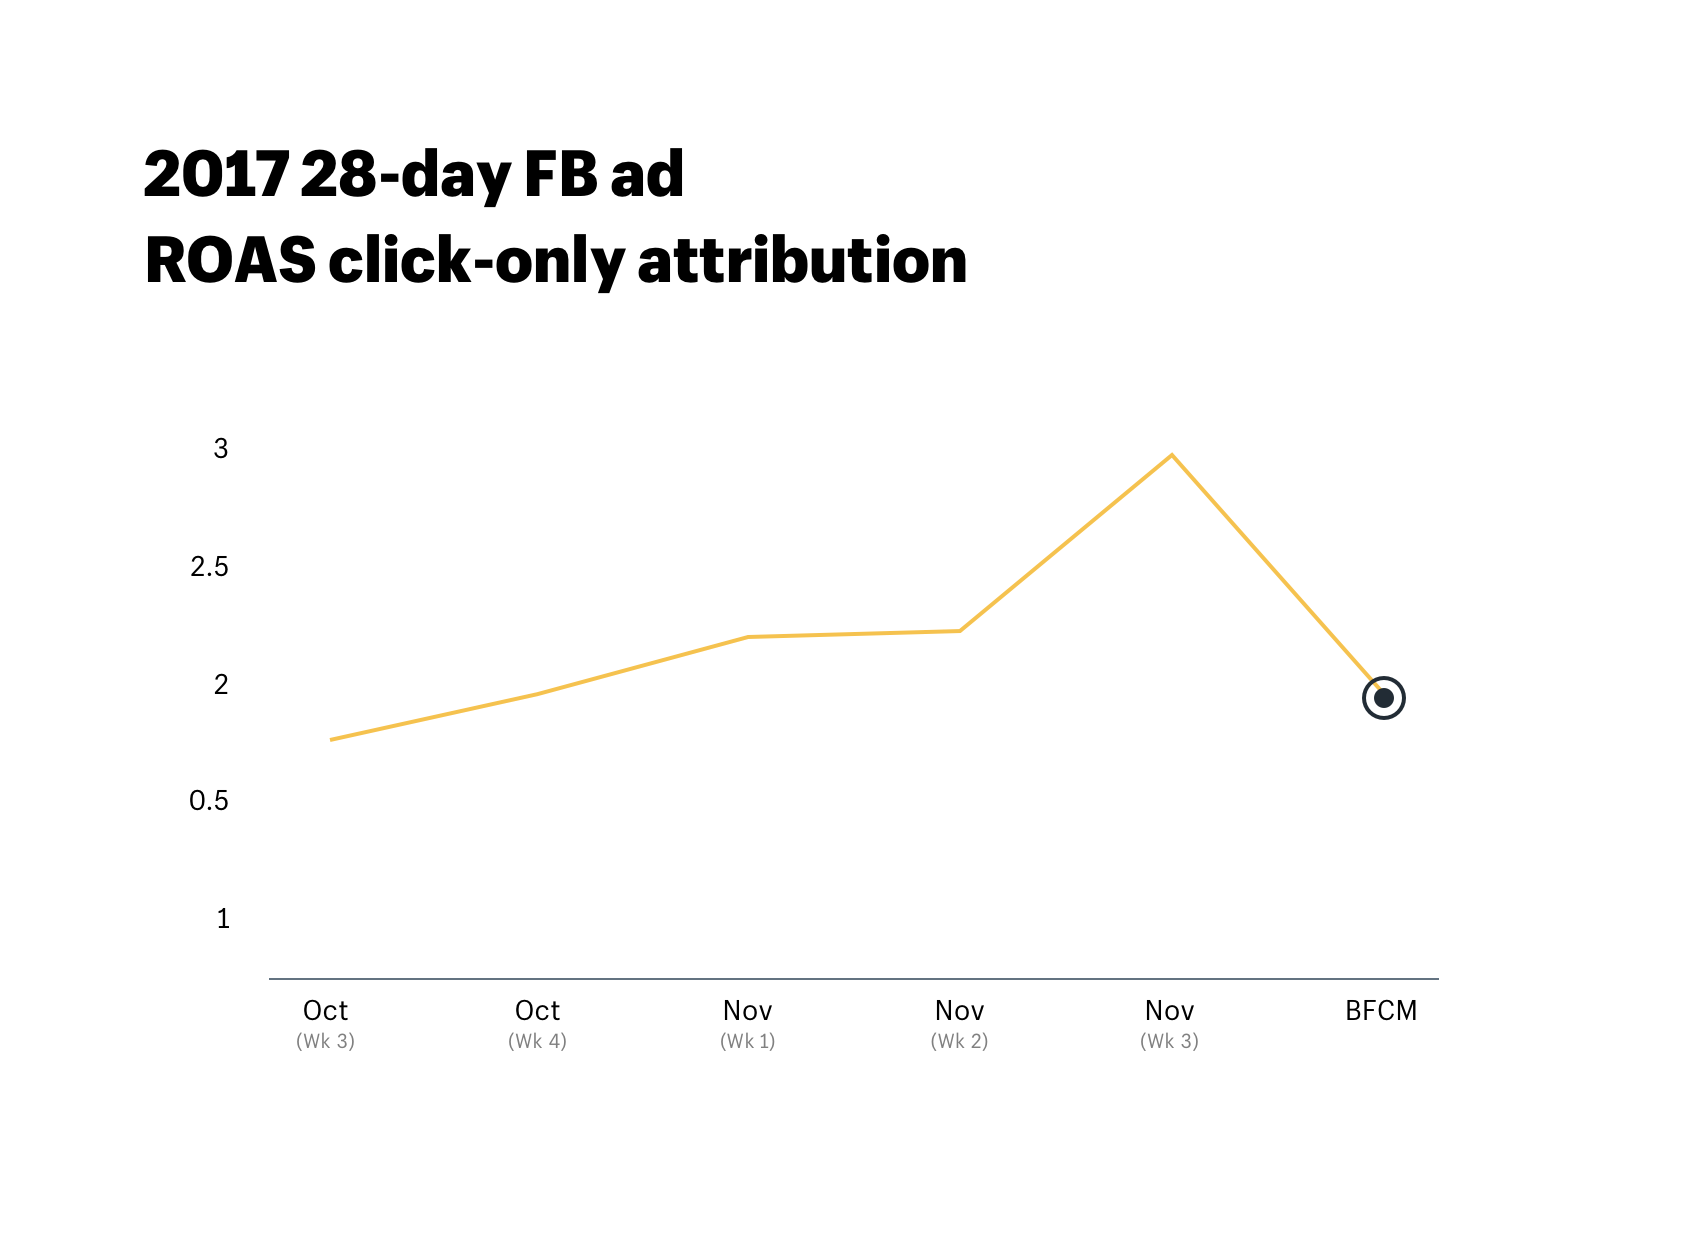 Black Friday Facebook Ads Guide From 6 8m In Ecommerce Holiday Spend